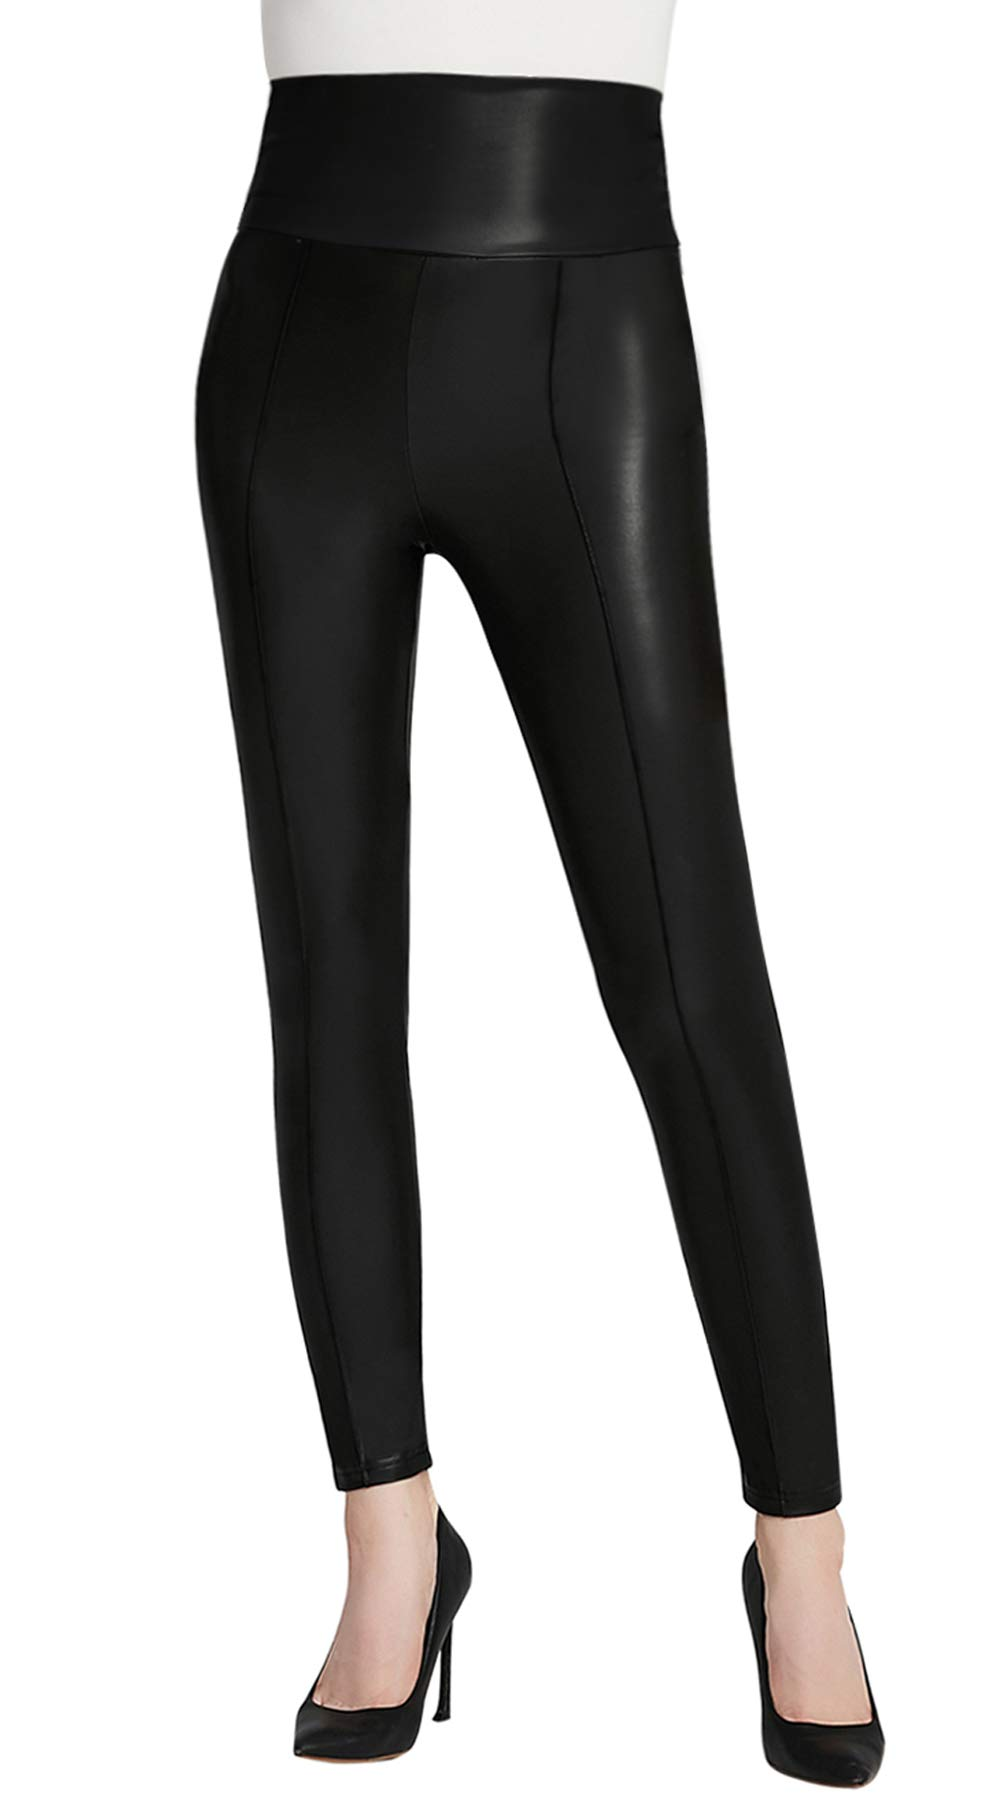 Everbellus High Waisted Faux Leather Leggings for Women Sexy Black Leather Pants X-Large